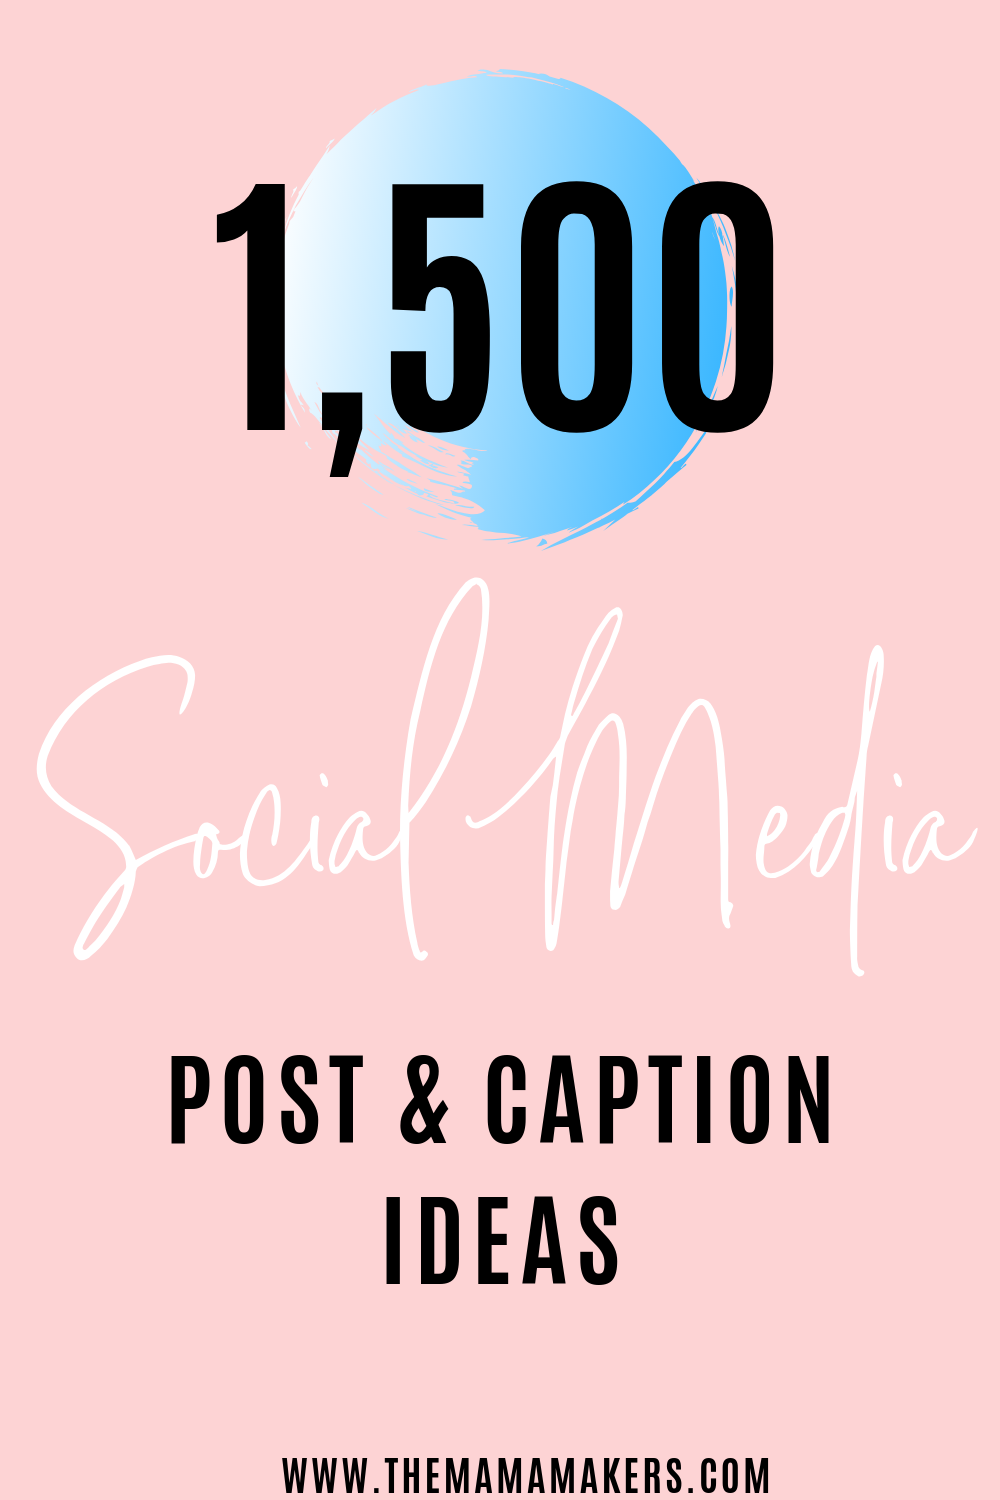 Social Media Content Creation Guide